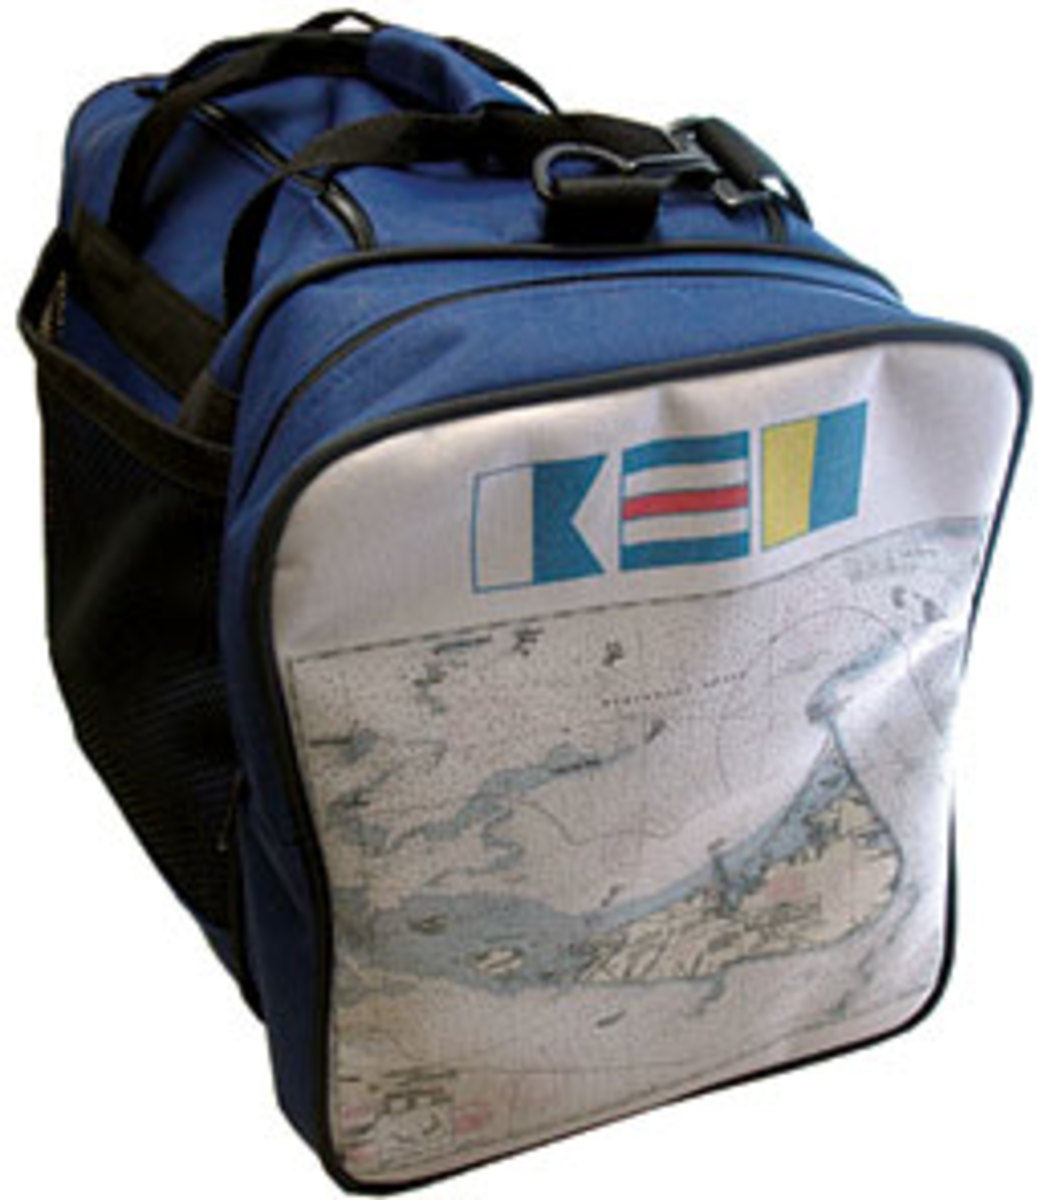 An example of one of the customized bags from Not for Navigation.